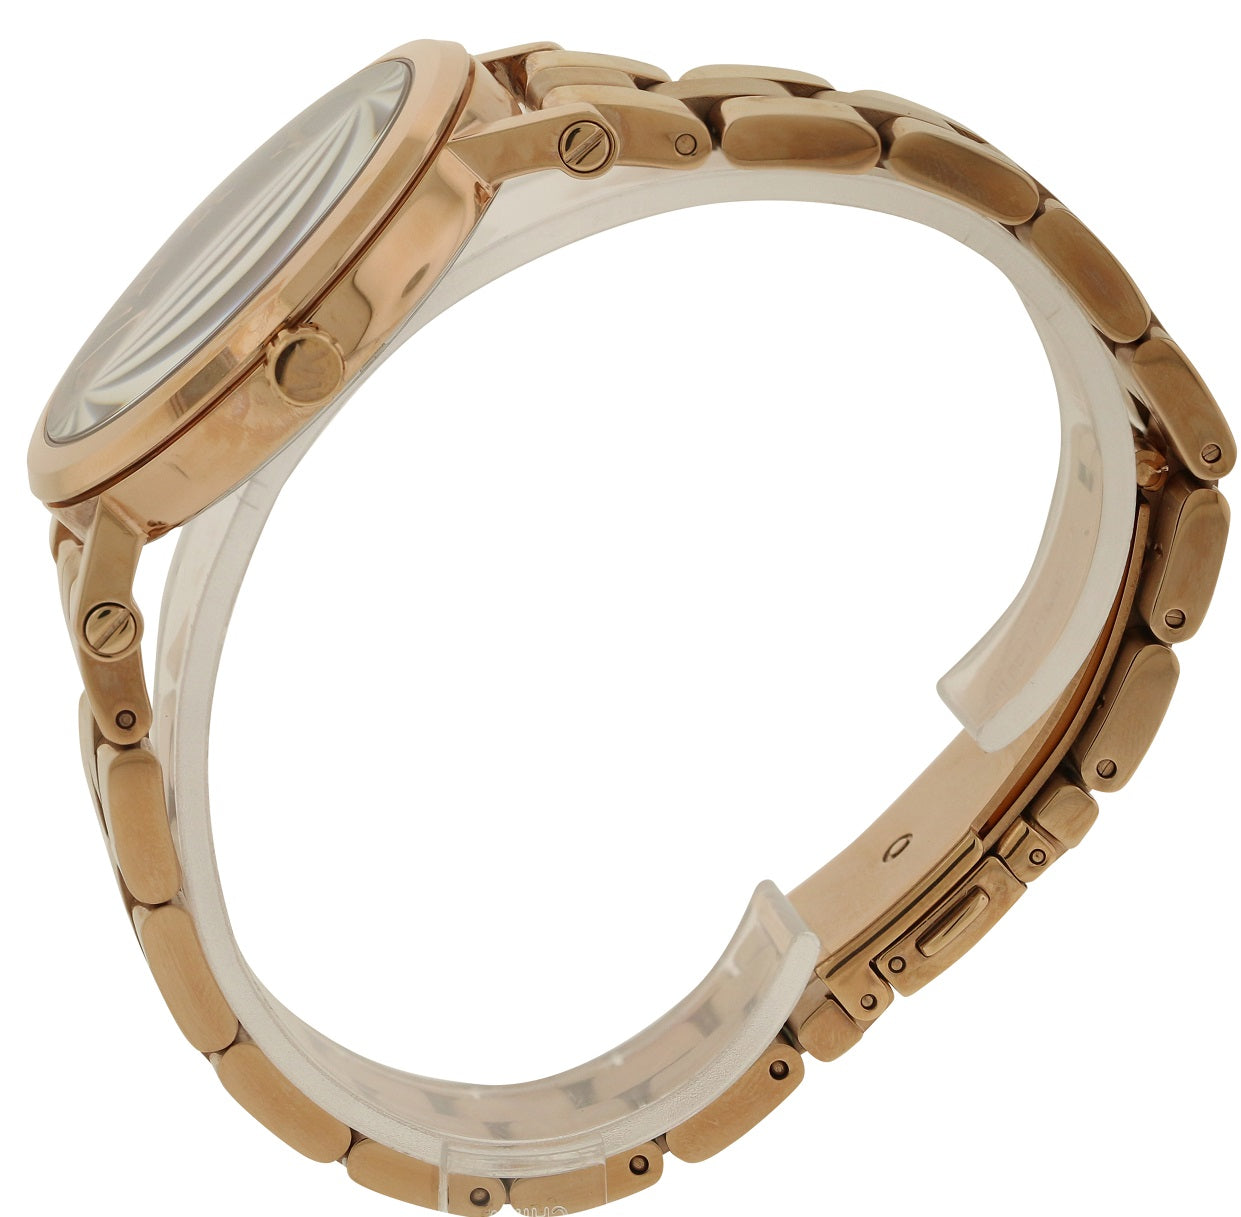 Michael Kors Norie Rose Gold Tone Ladies Watch – Jacob Time